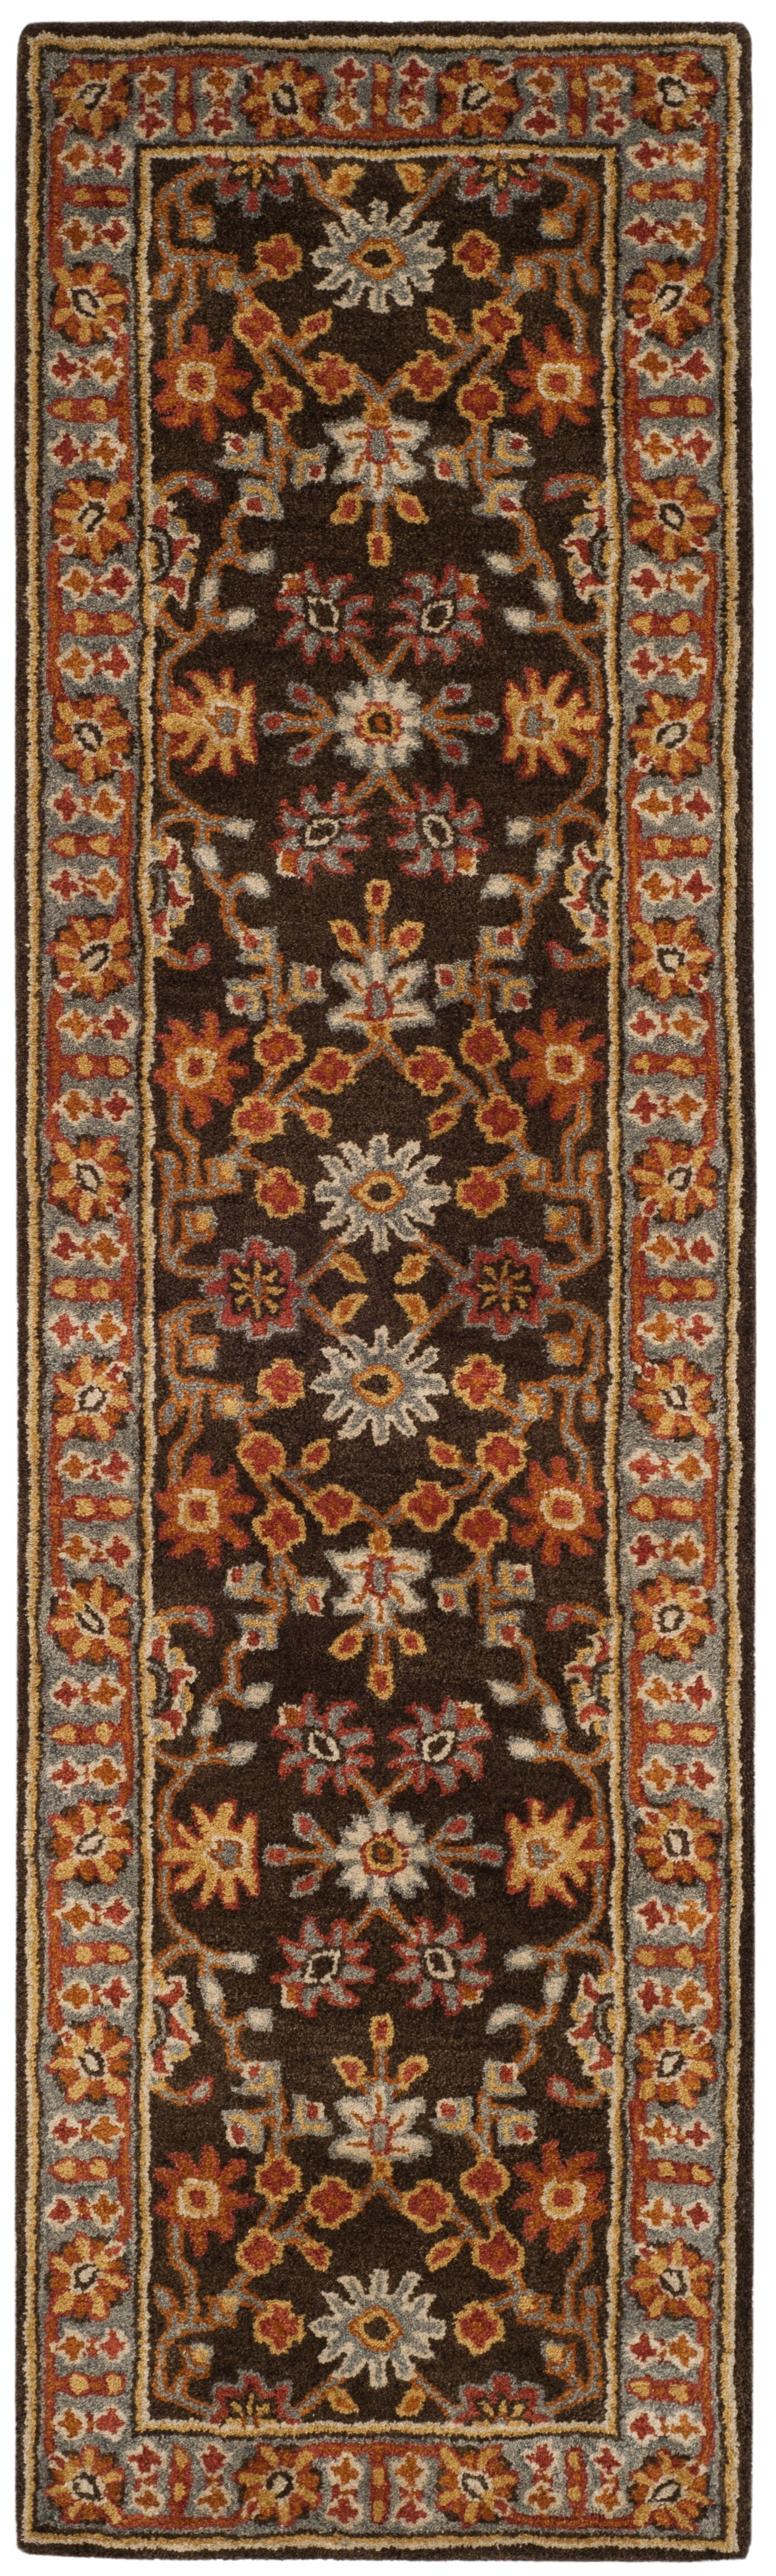 Cranmore Hand-Tufted Brown/Blue Area Rug Rug Size: Runner 2'3